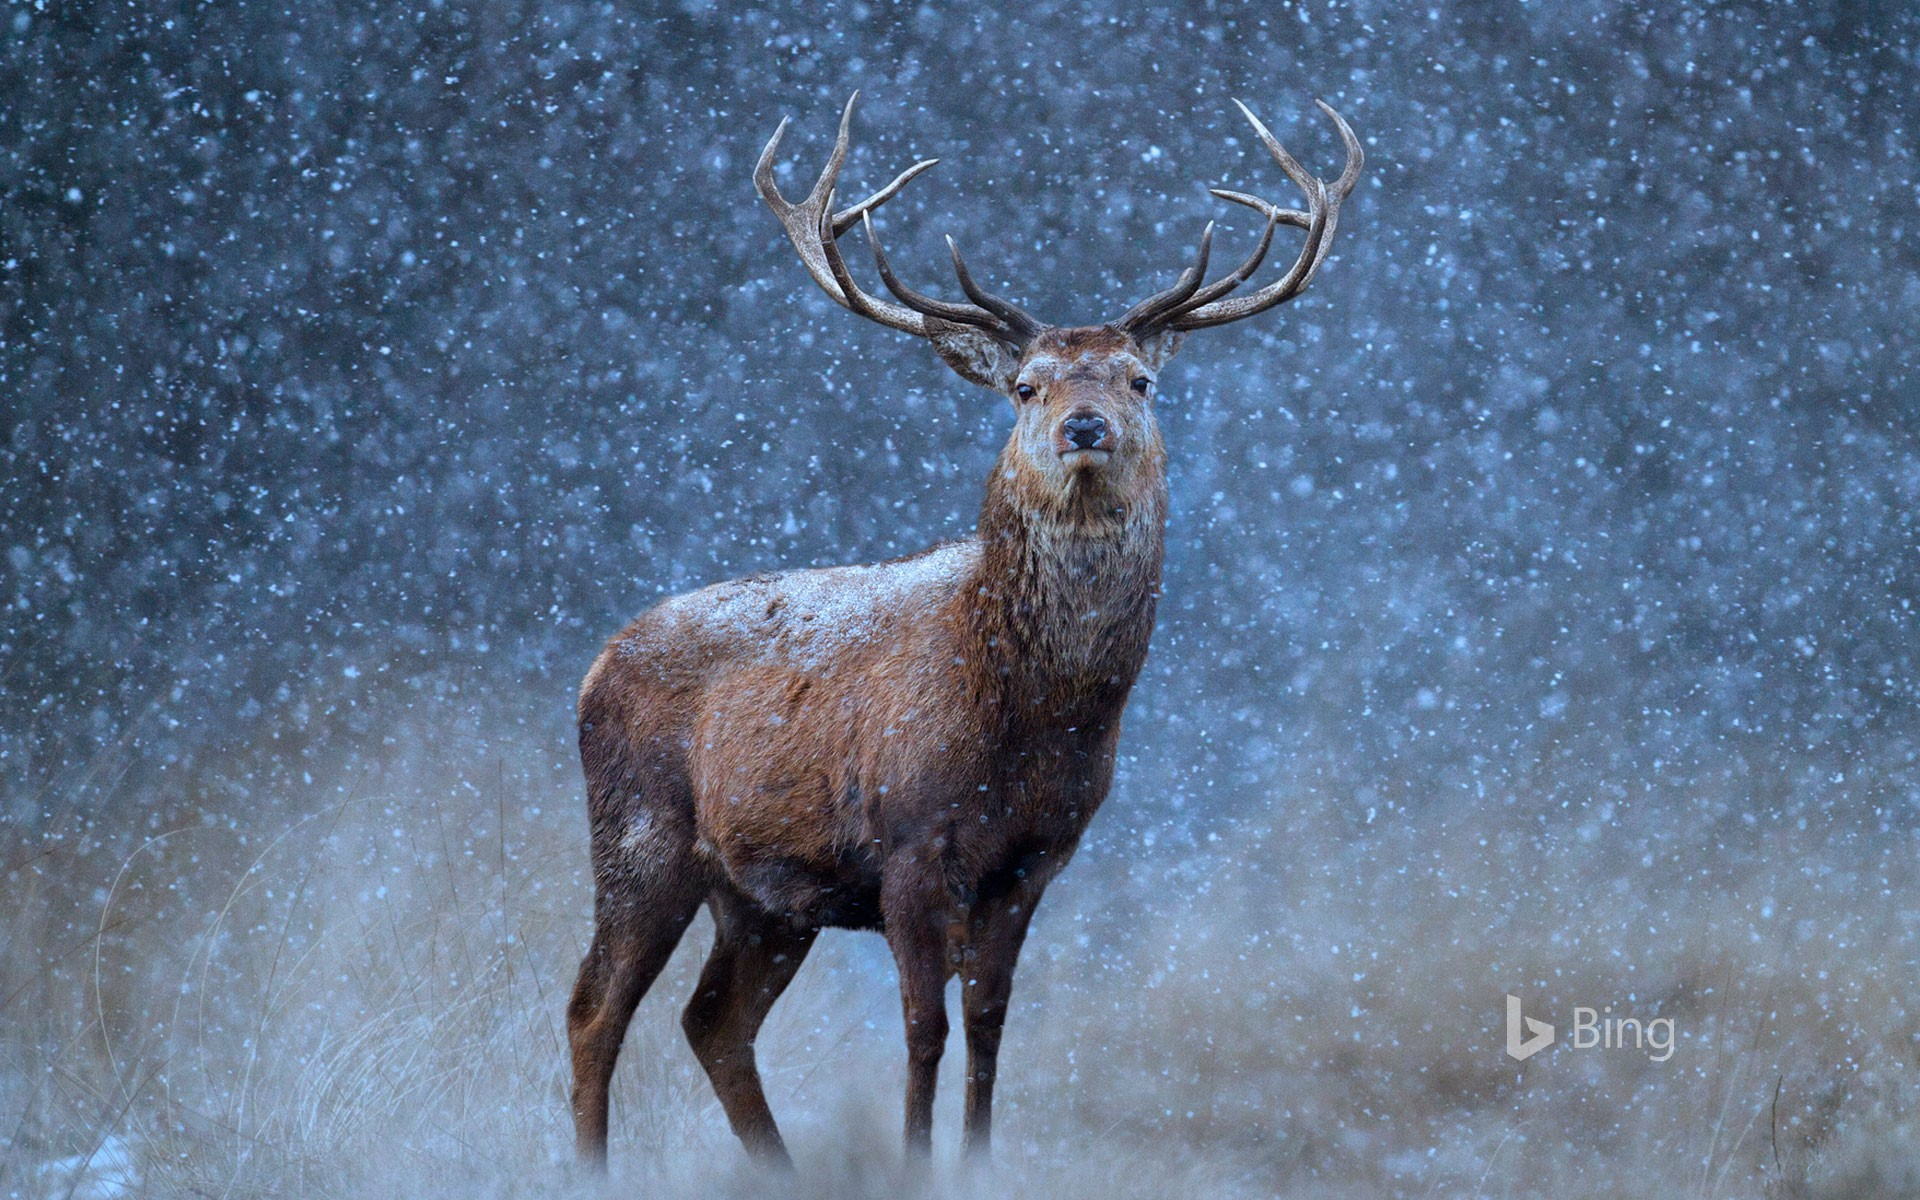 A red deer in the snow